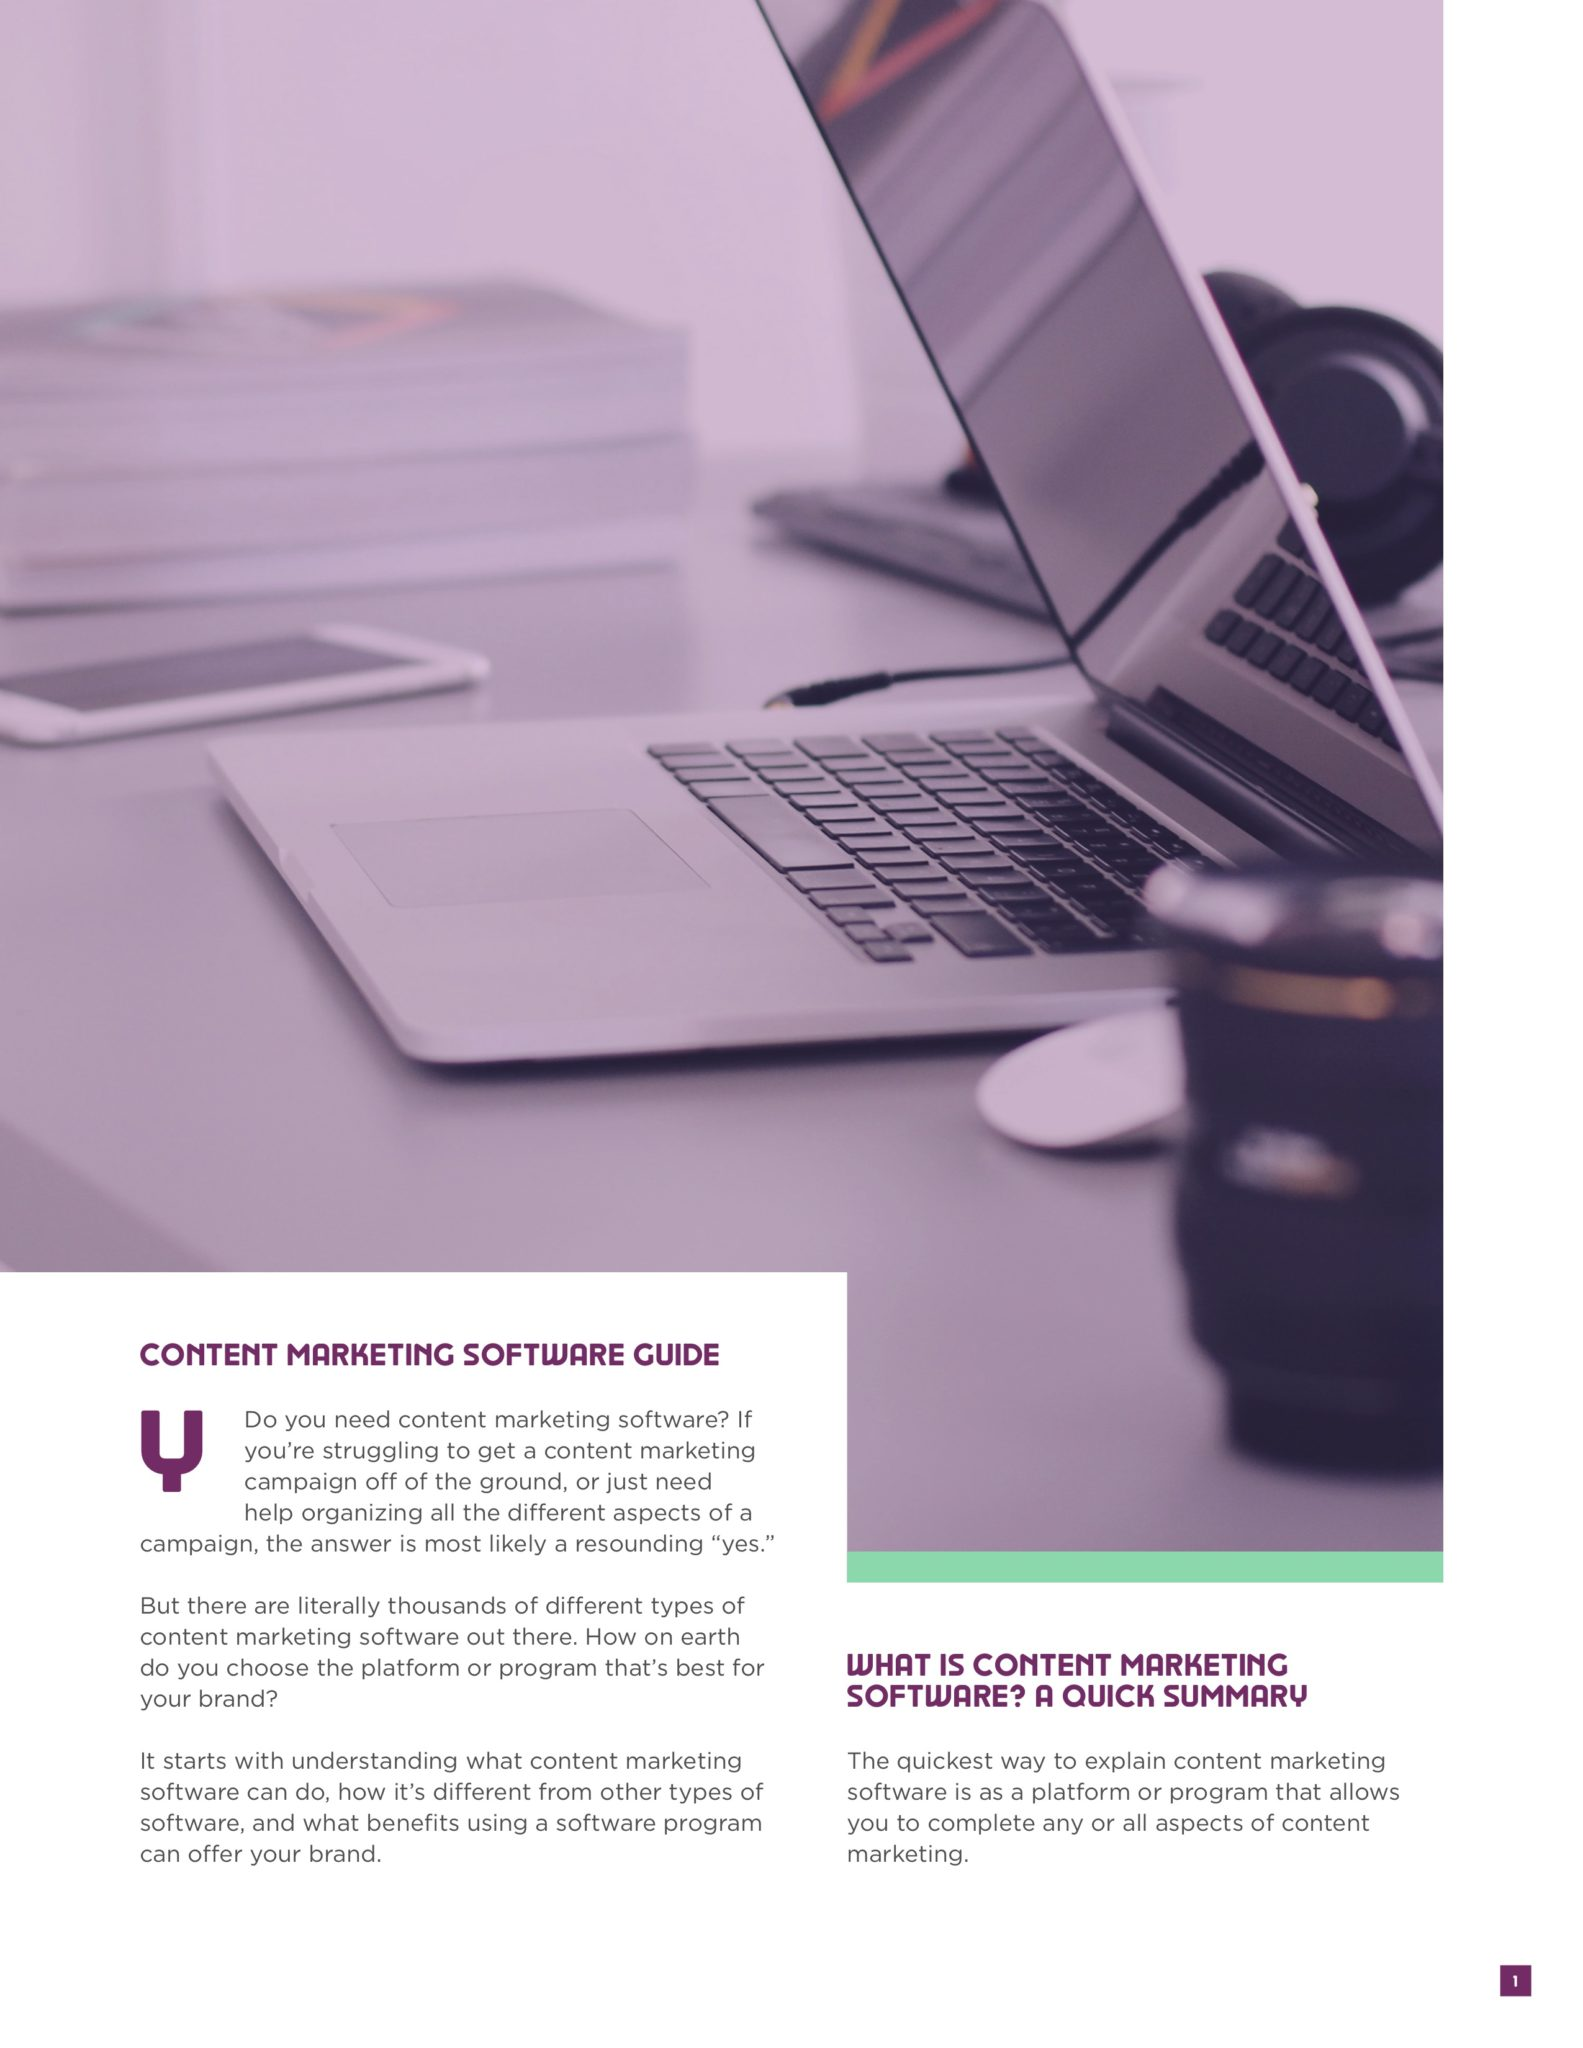 Content Marketing Software Guide